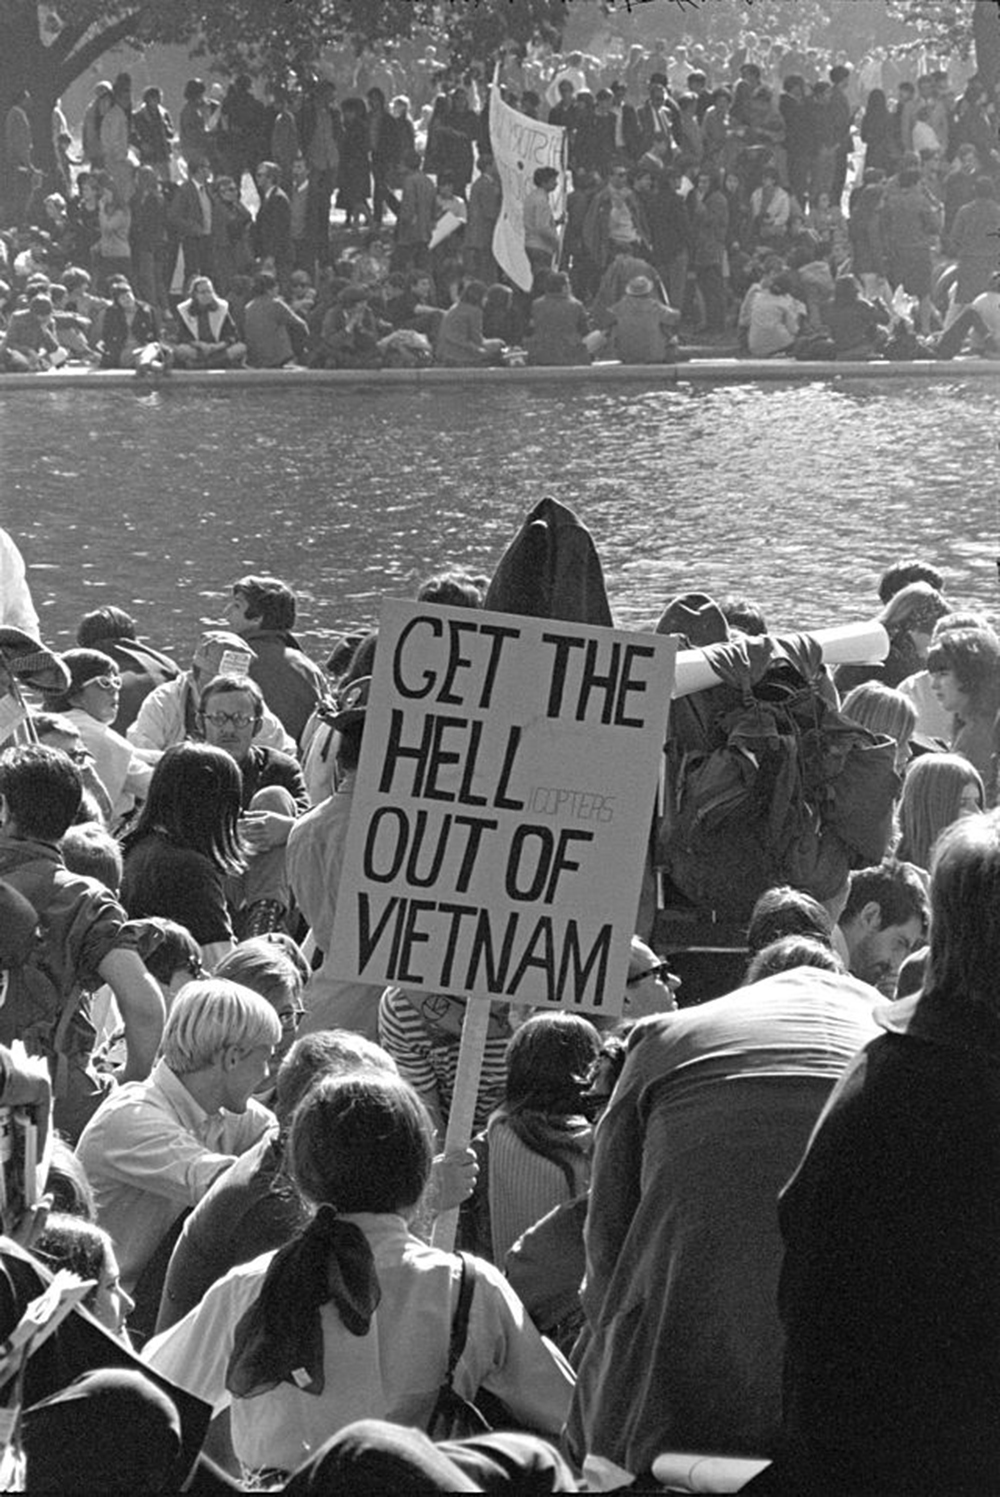 """Photograph of Vietnam War protestors in Washington DC. A sign says """"Get the Hell out of Vietnam!"""""""